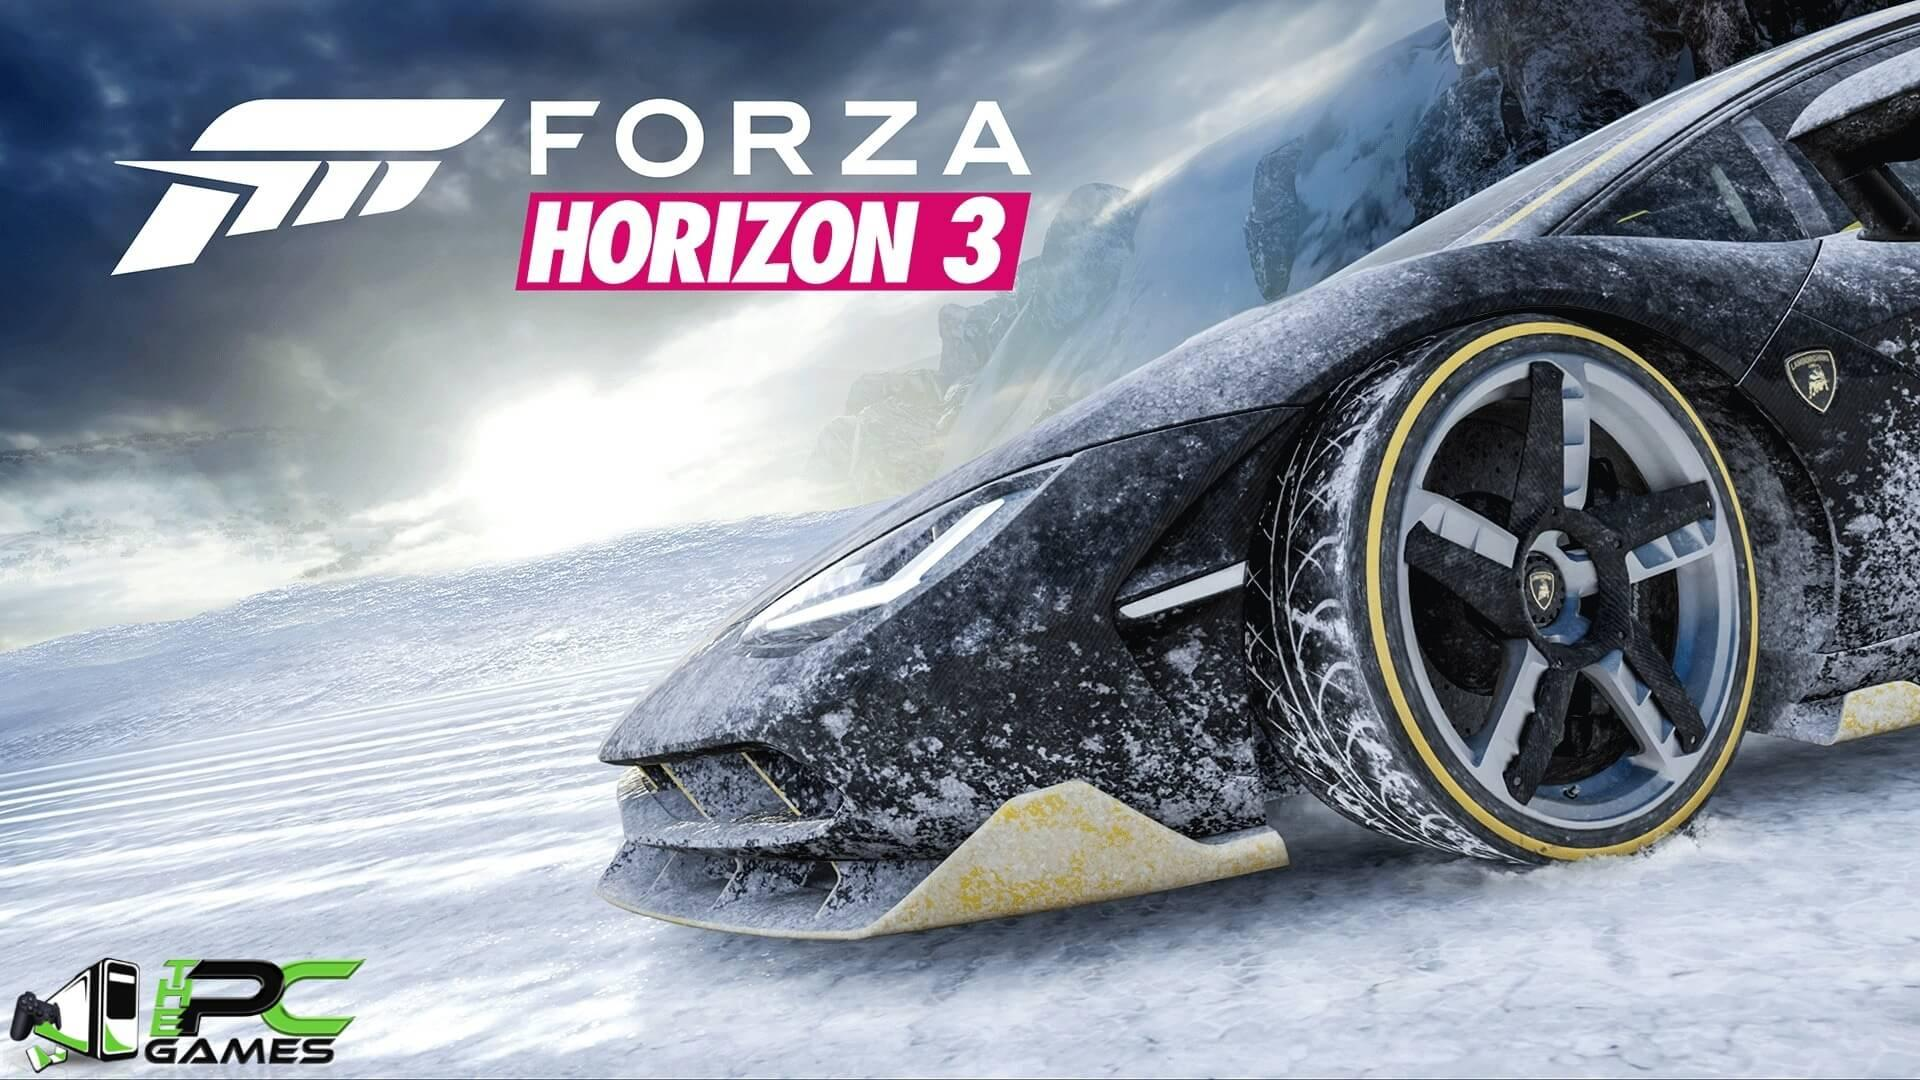 Forza Horizon 3 With All DLCs And Updates iOS Latest Version Free Download